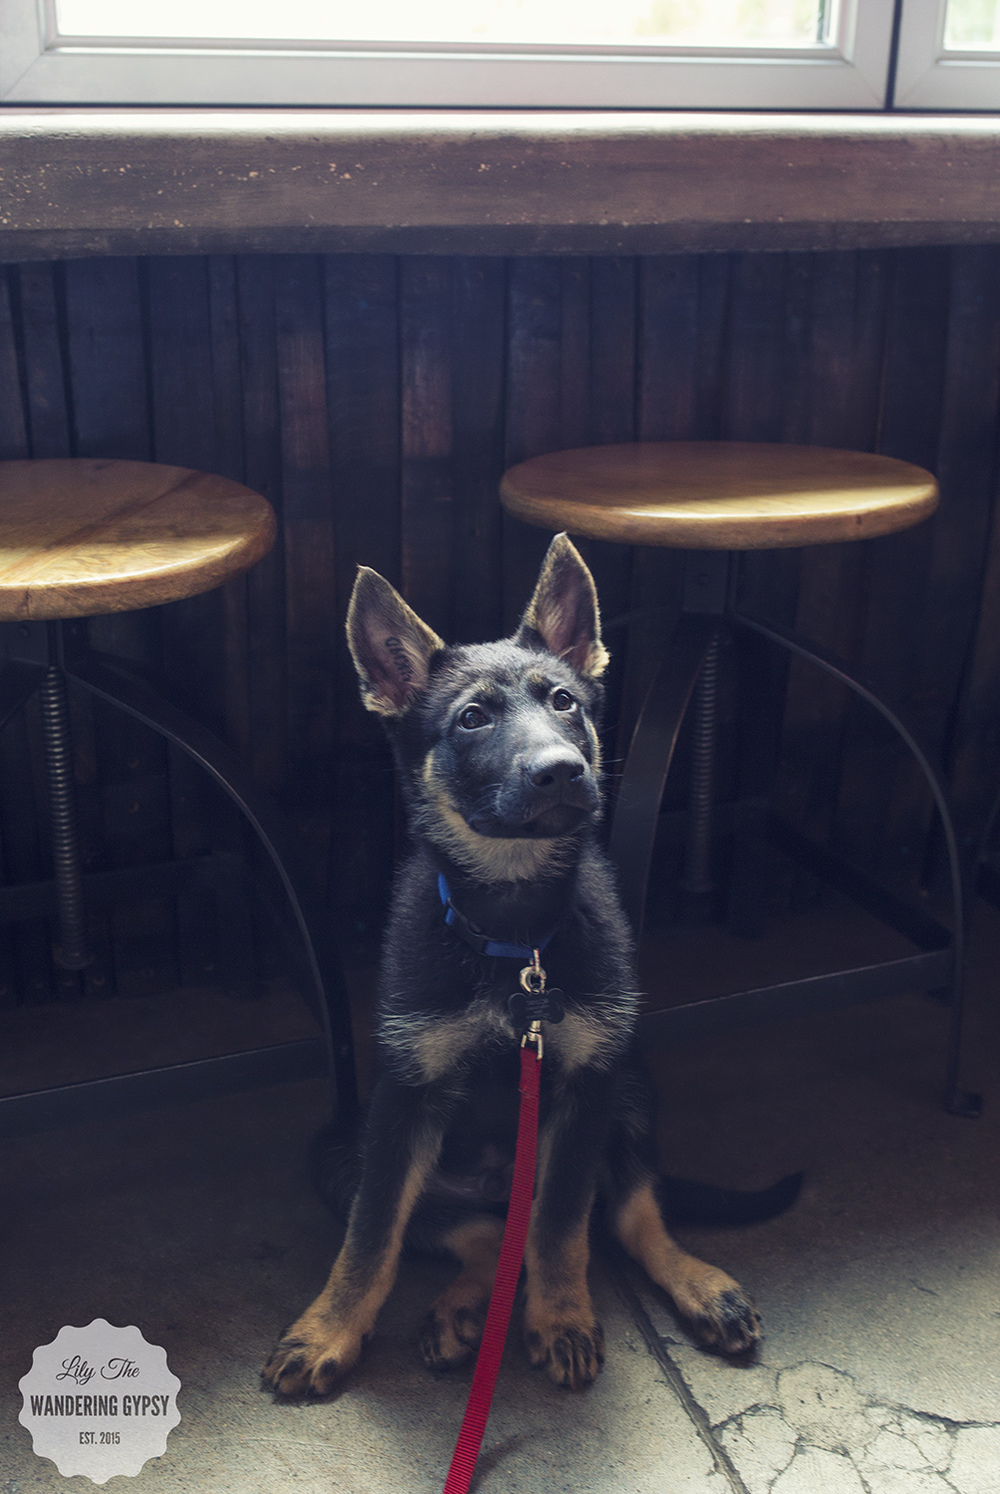 Green Bench Brewing is super dog friendly! We met this cute little German Shepard puppy, who was 3 months old!